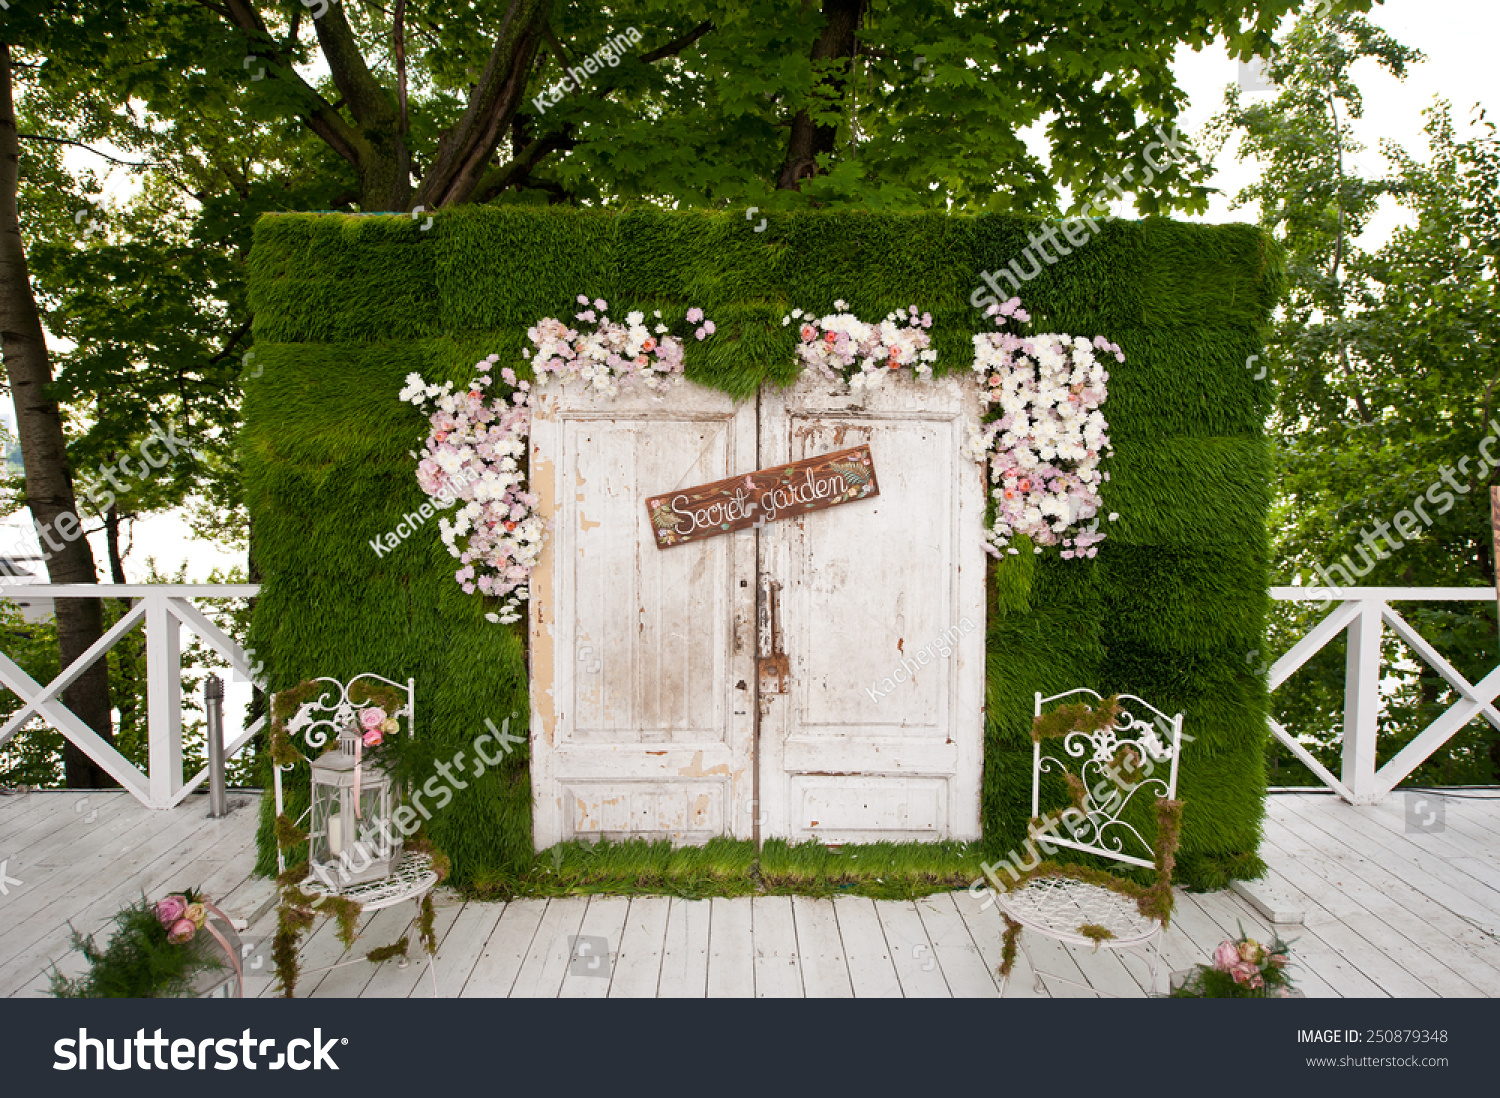 royalty free wedding photo booth decoration 250879348 stock photo. Black Bedroom Furniture Sets. Home Design Ideas